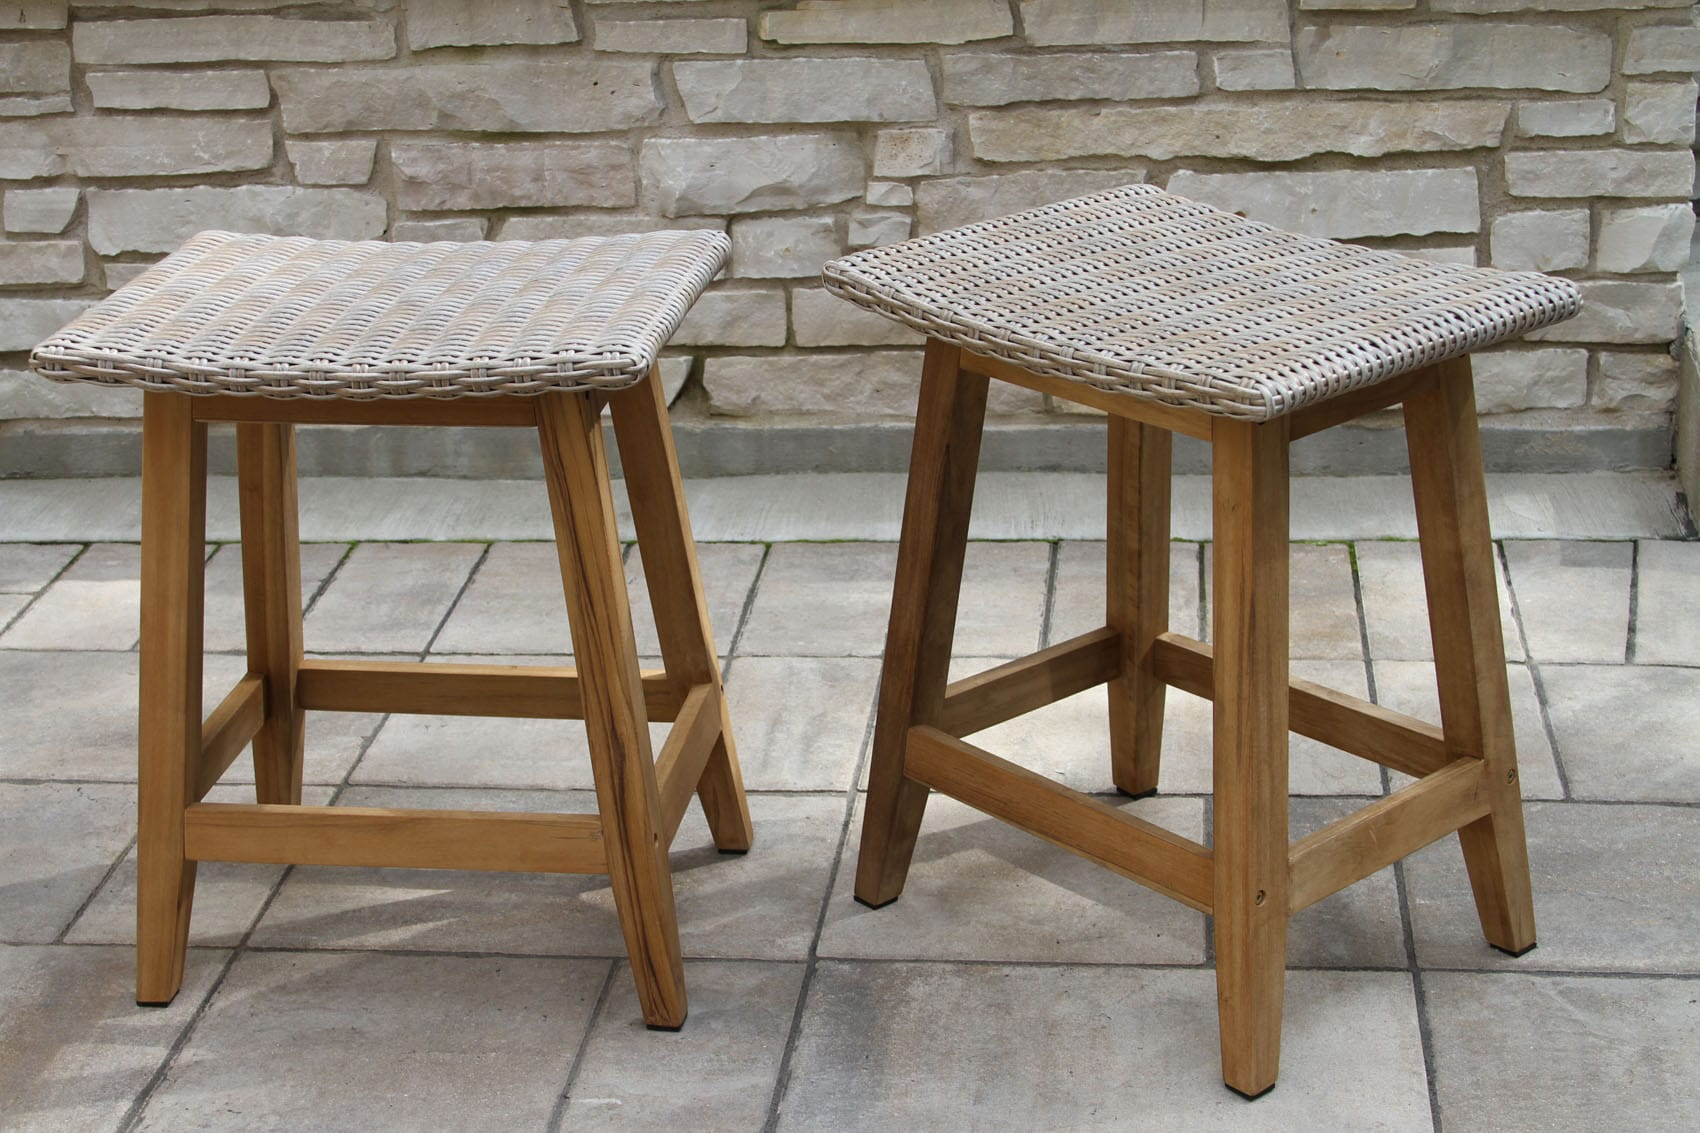 Fine Solid Wood Outdoor Patio Furntiure Gmtry Best Dining Table And Chair Ideas Images Gmtryco